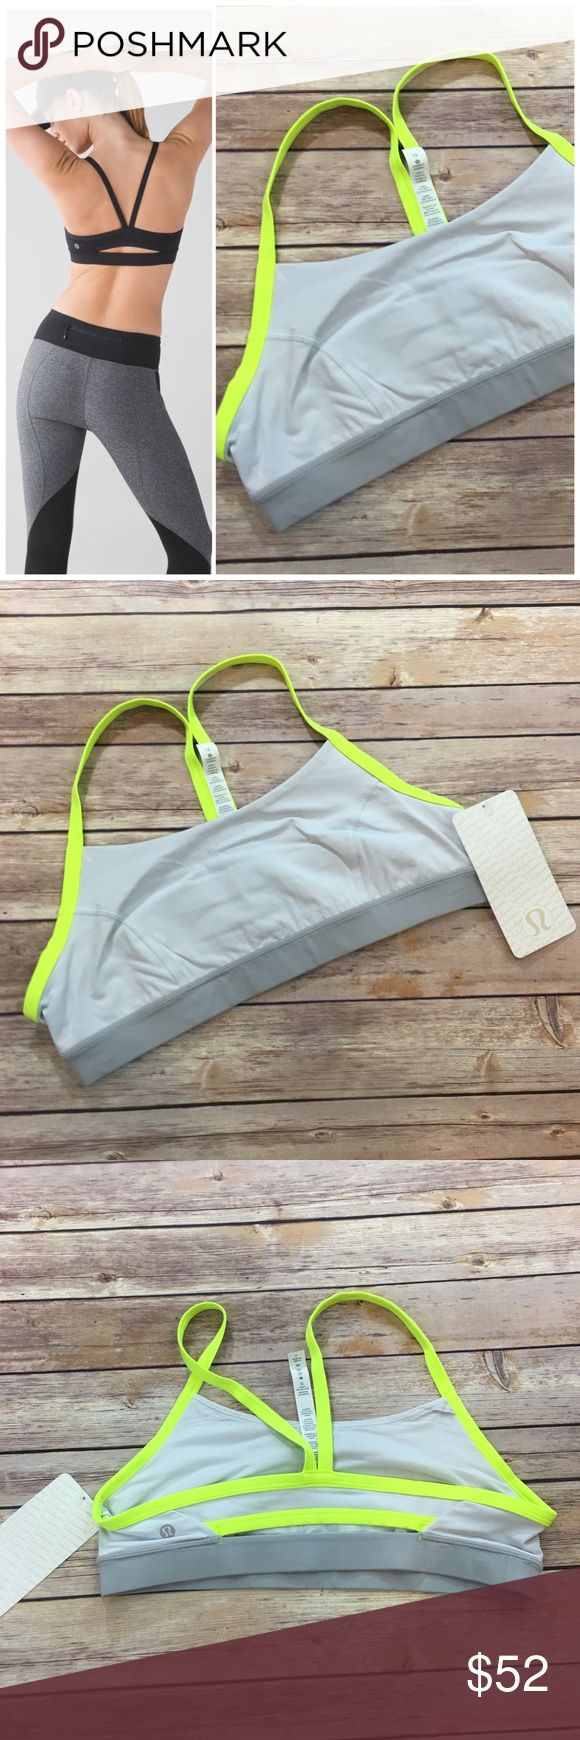 NWT Lululemon Sports Bra NWT Lululemon Rise and Run Sports Bra. Made of 77% Nylon and 23% elastane lululemon athletica Intimates & Sleepwear Bras